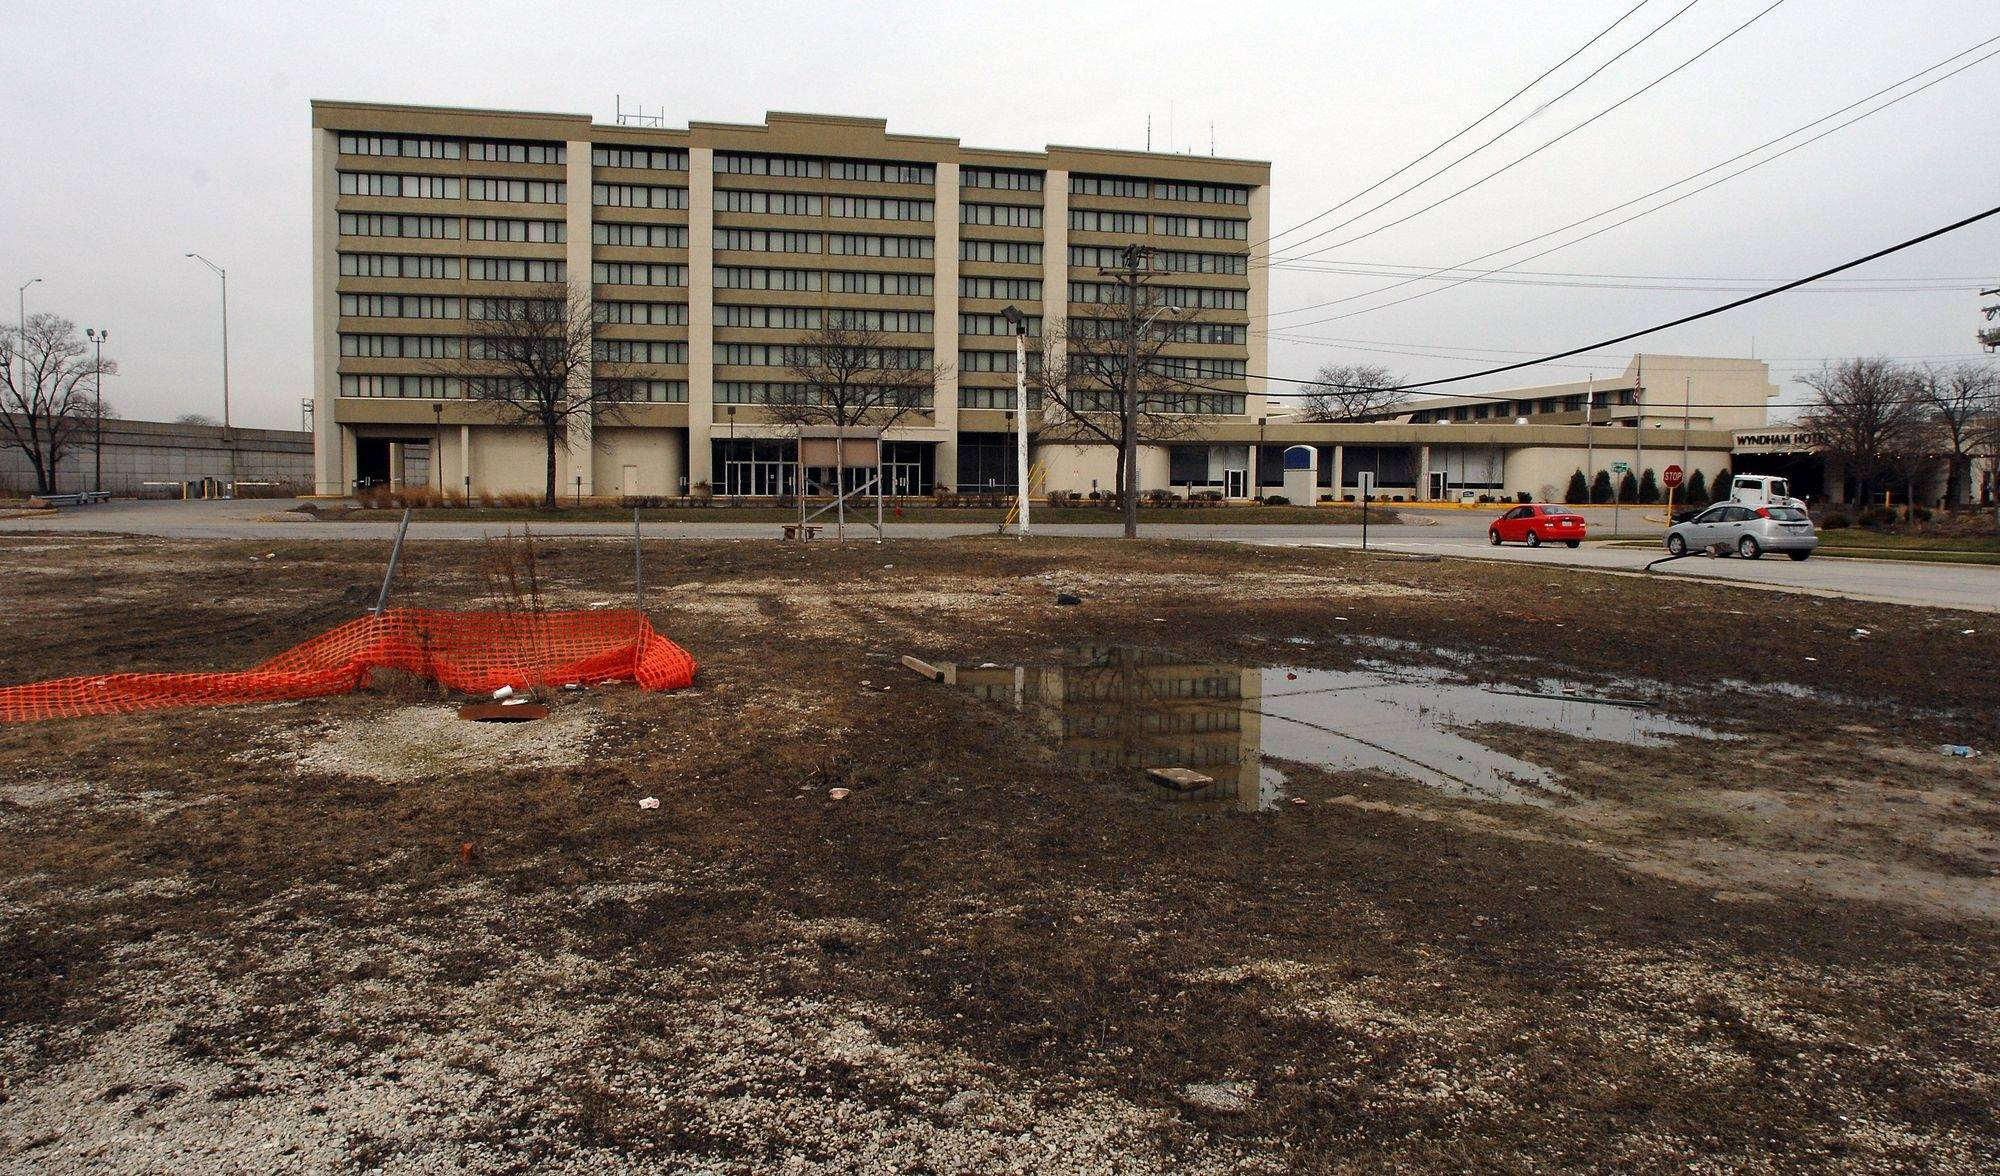 Financing woes imperil Des Plaines hotel projects